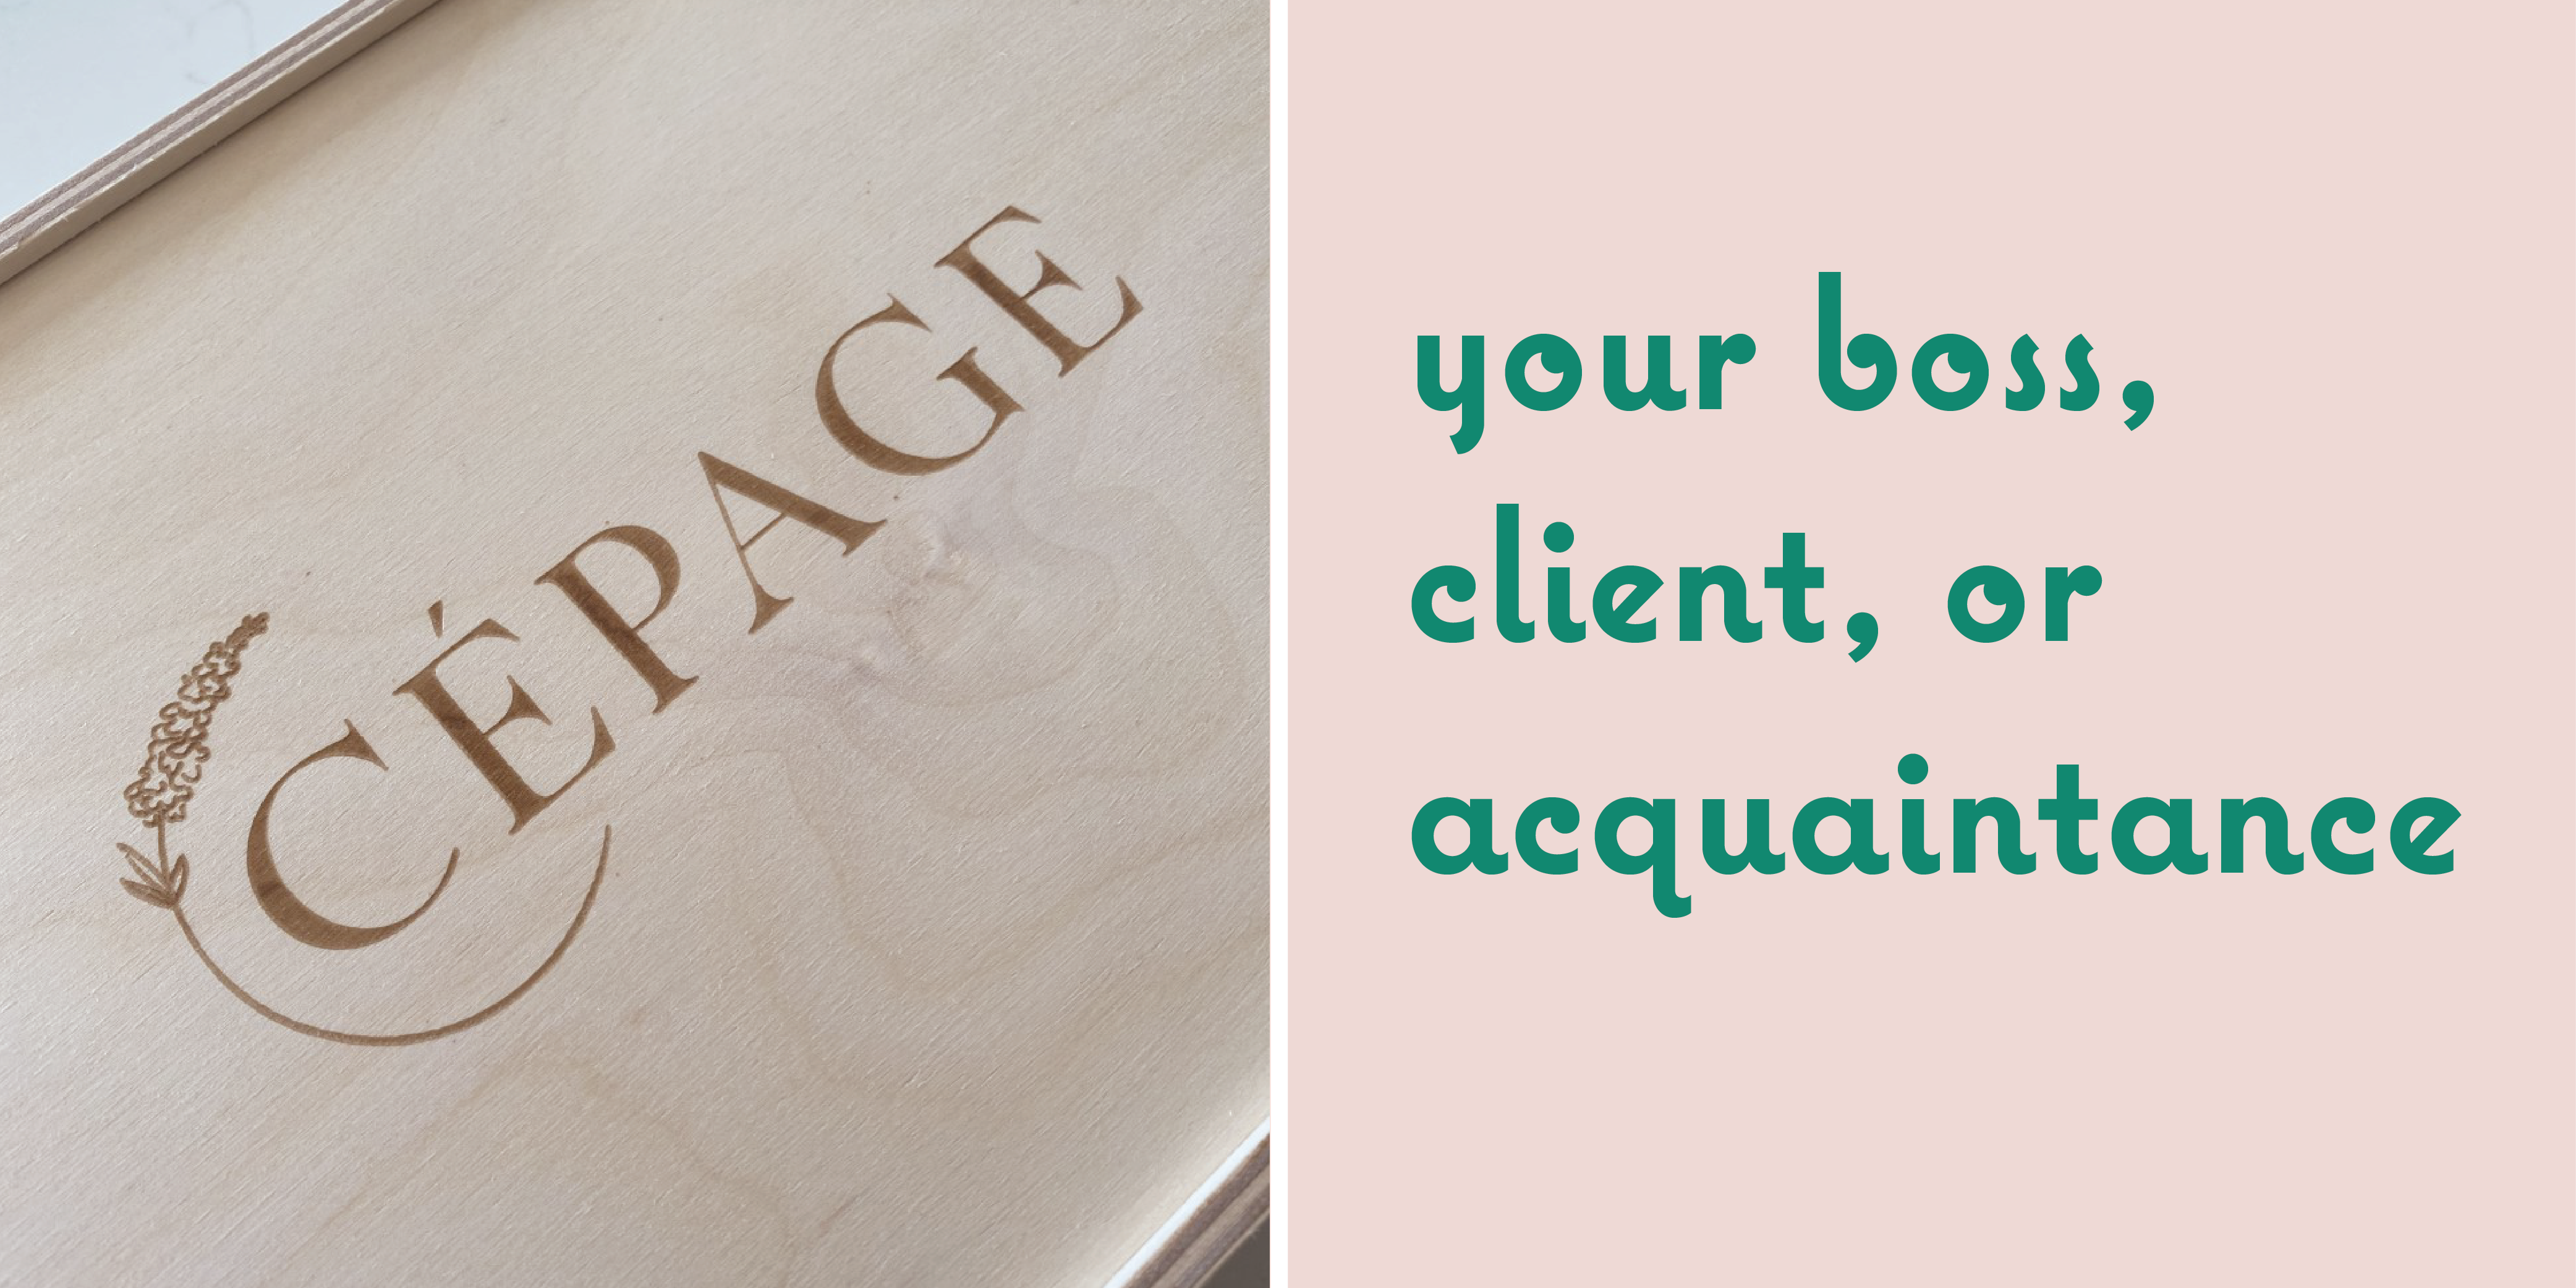 for your boss client or acquaintance